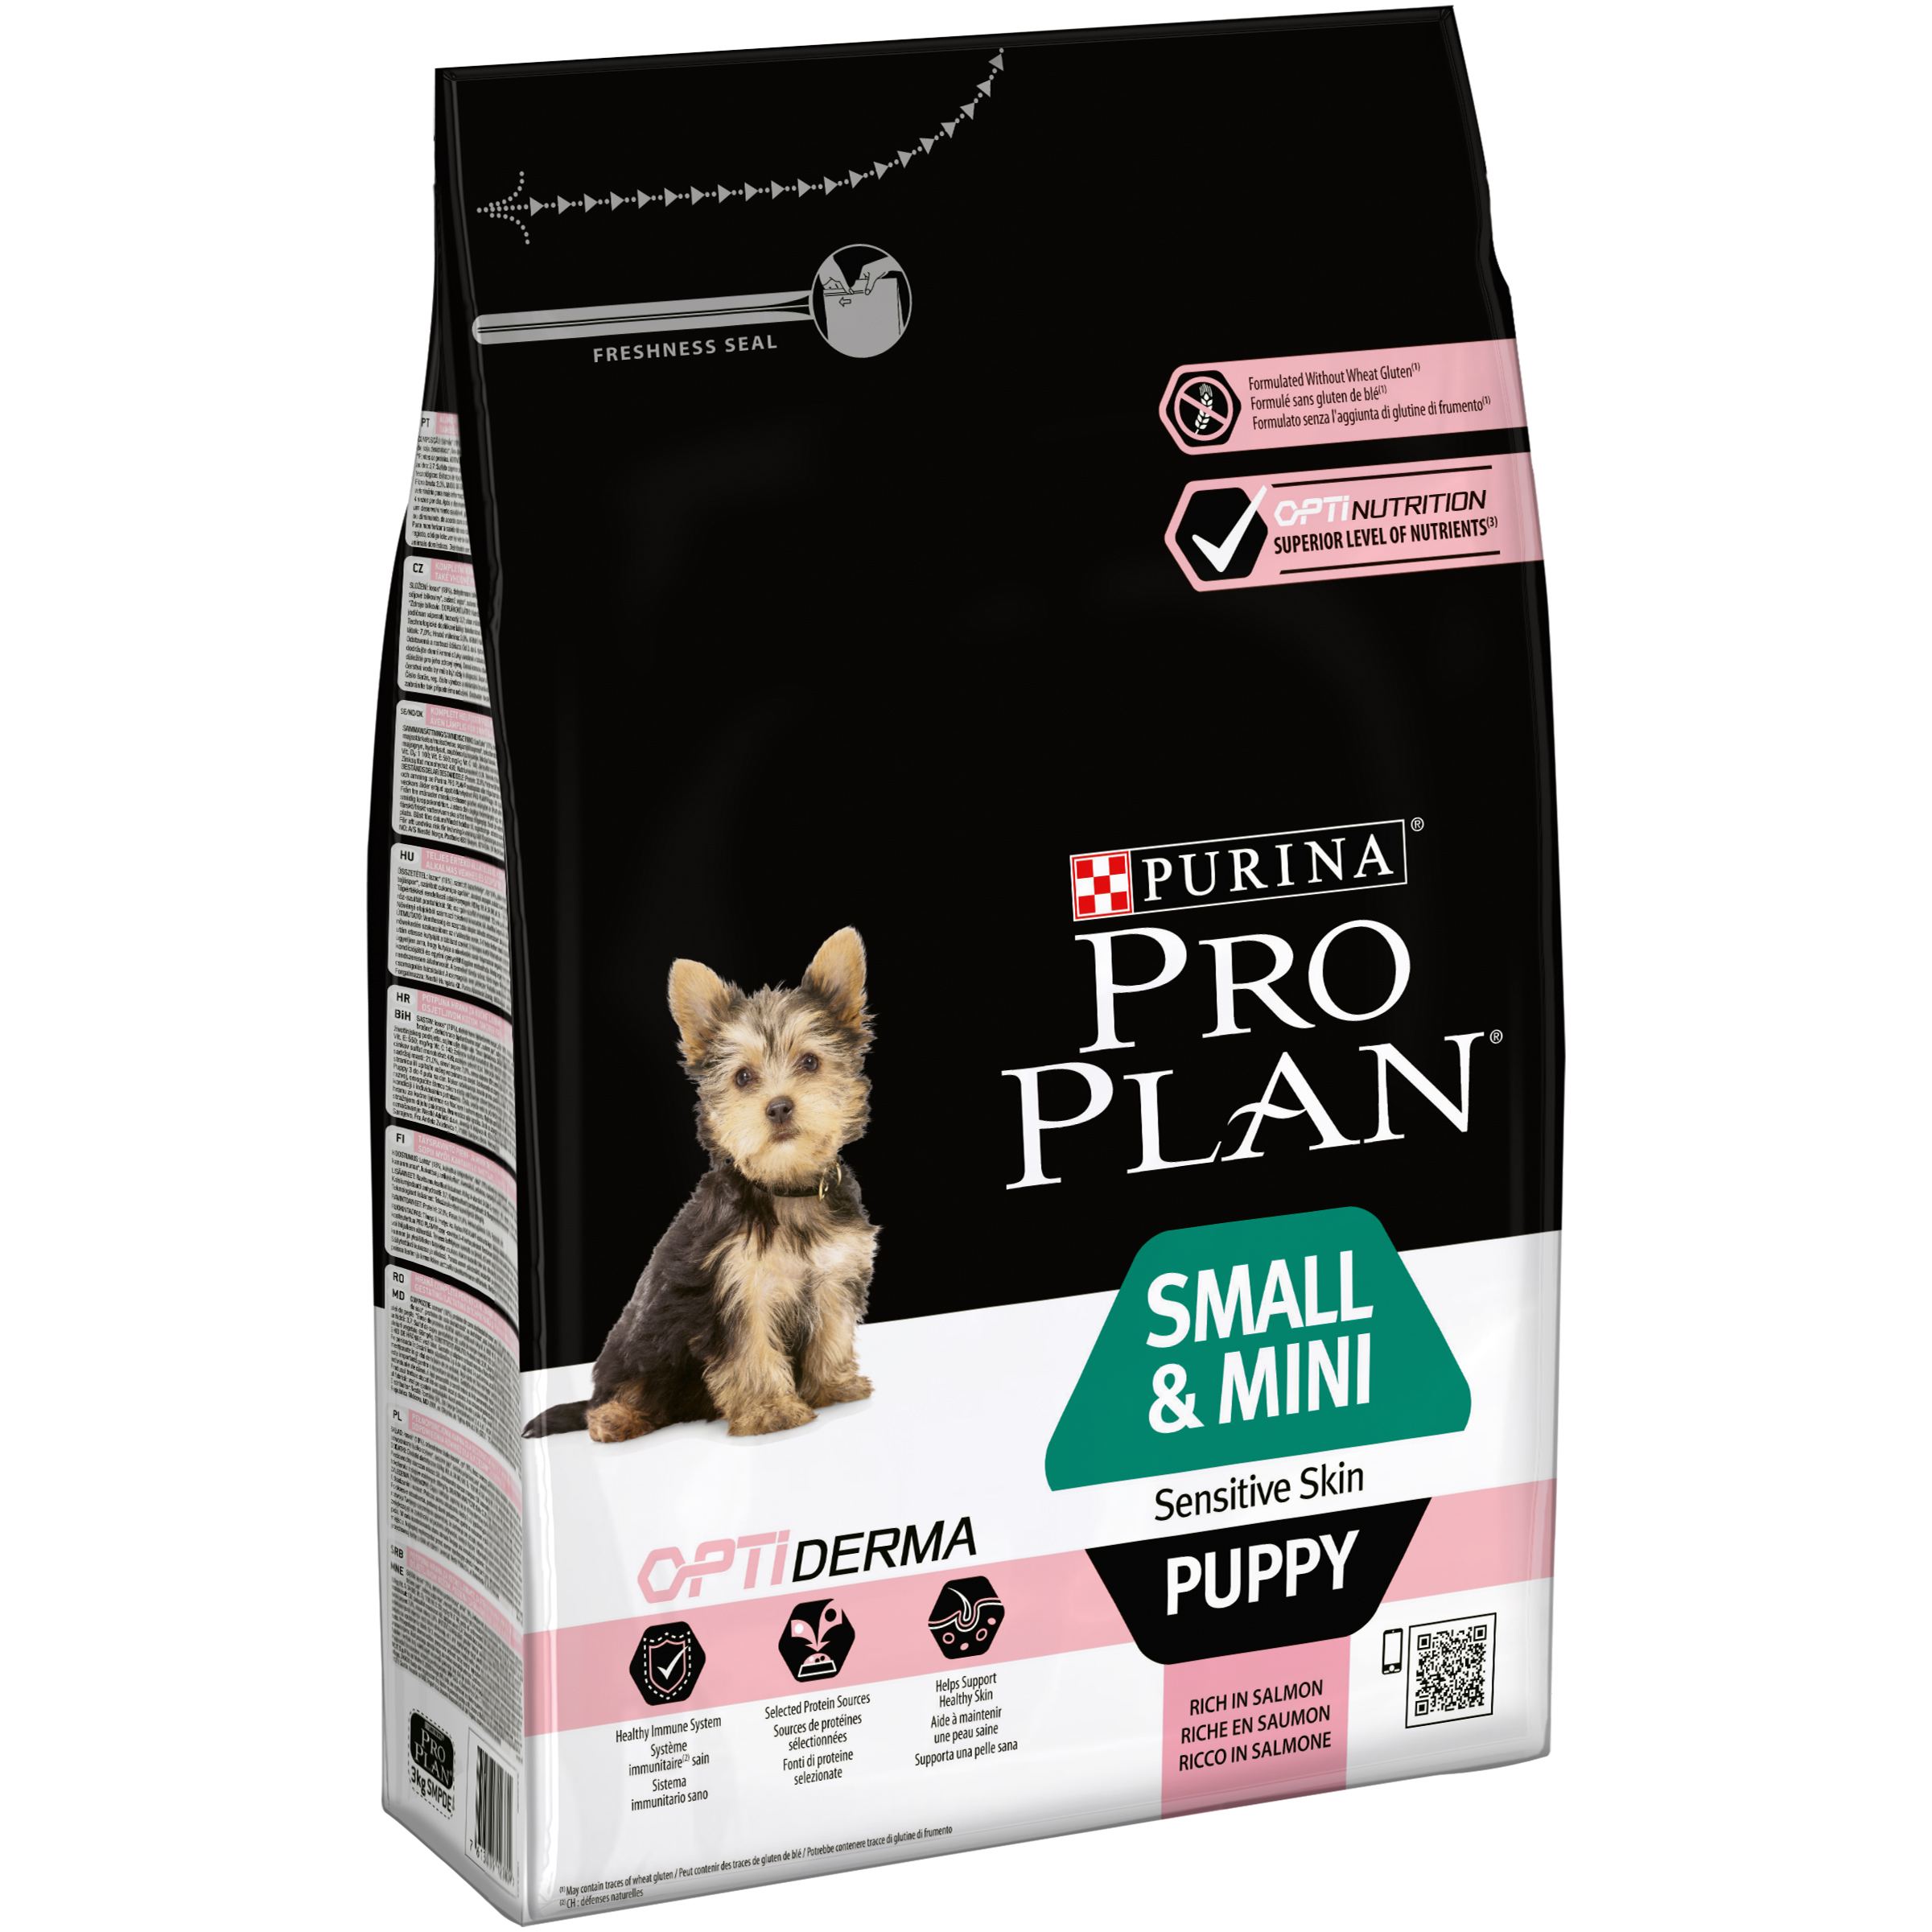 Фото - Pro Plan dry food for small / dwarf puppies with sensitive skin, OPTIDERMA complex, salmon and rice, 3 kg pro plan dry food for middle breed puppies with sensitive skin with optiderma complex with salmon and rice 9 kg